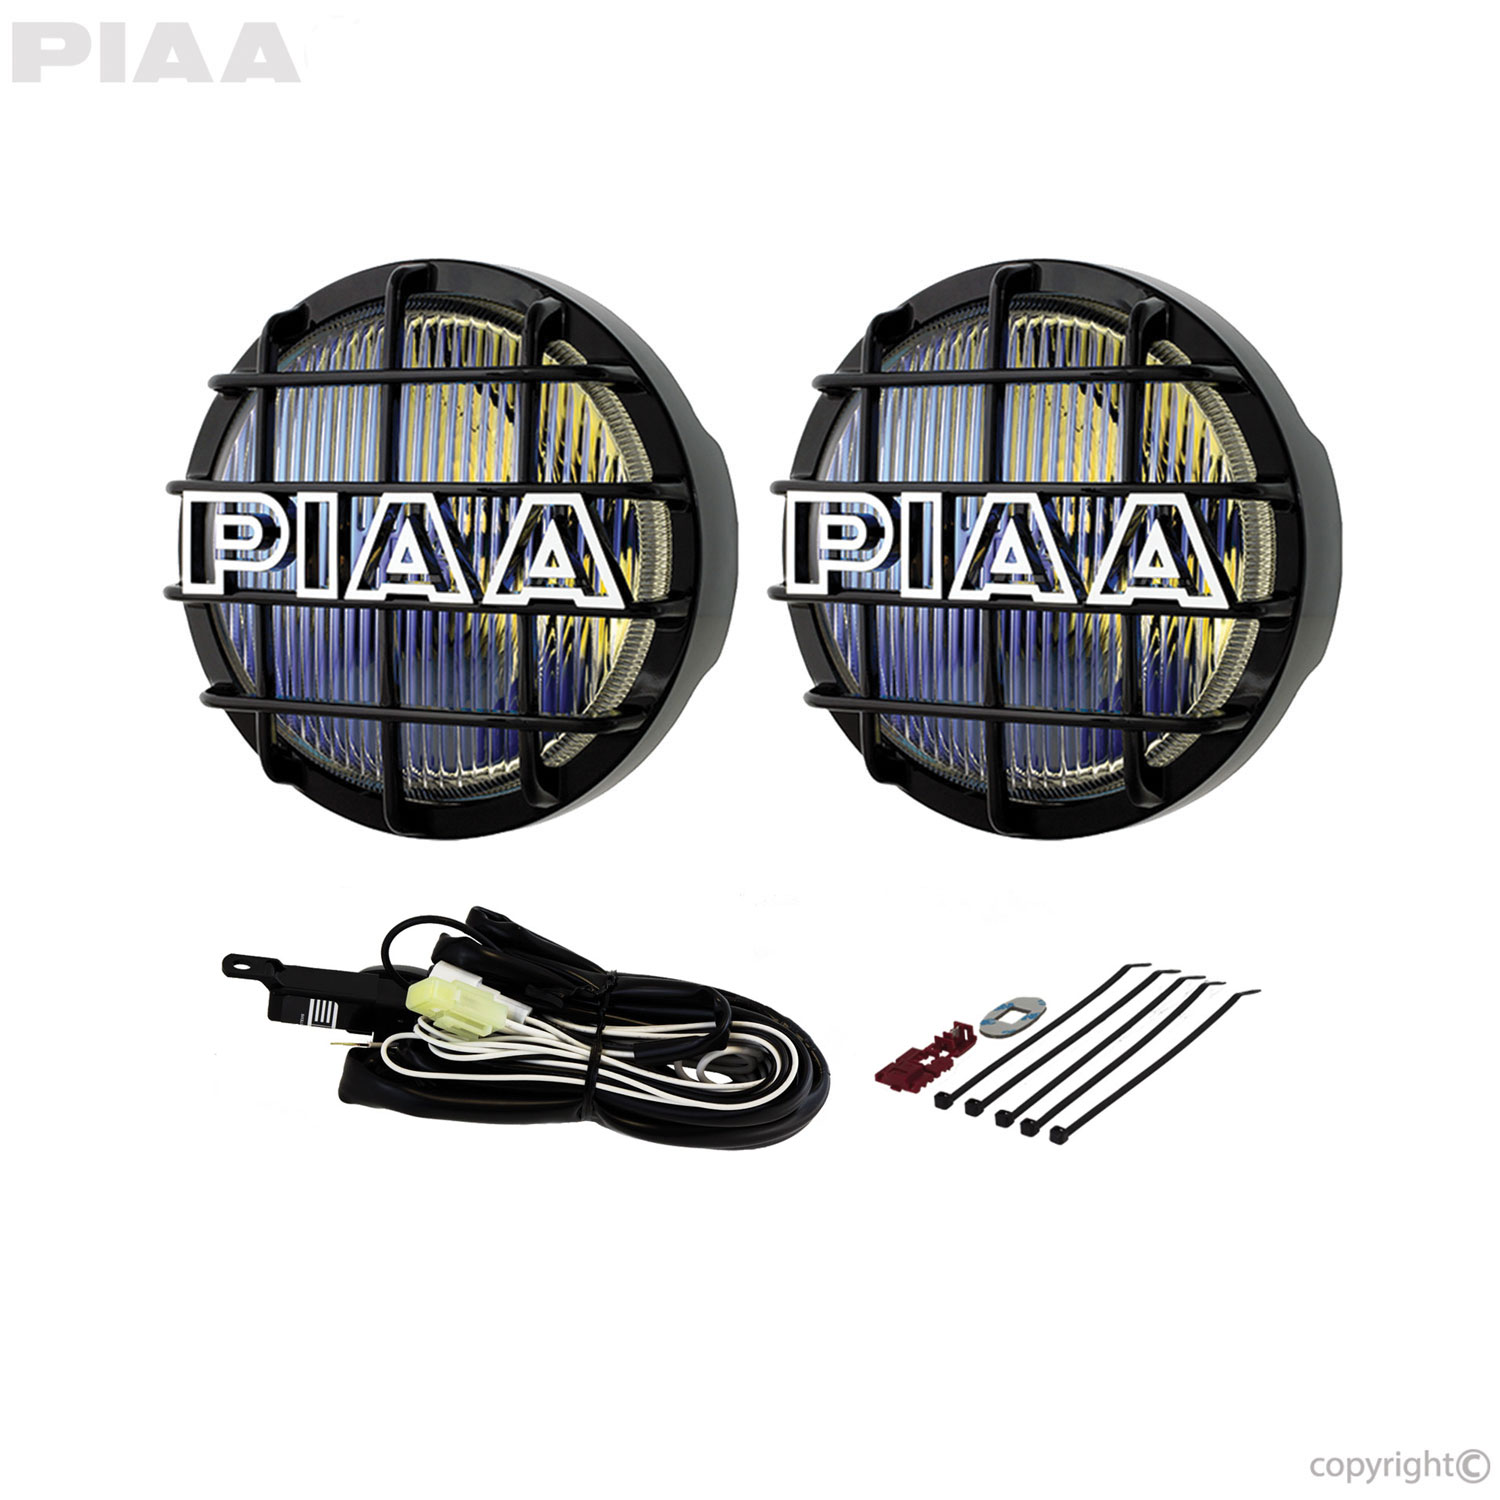 Piaa Fog Light Relay Wiring Diagram Just Another Blog Pilot 520 Ion Yellow Halogen Lamp Kit Rh Com Hella